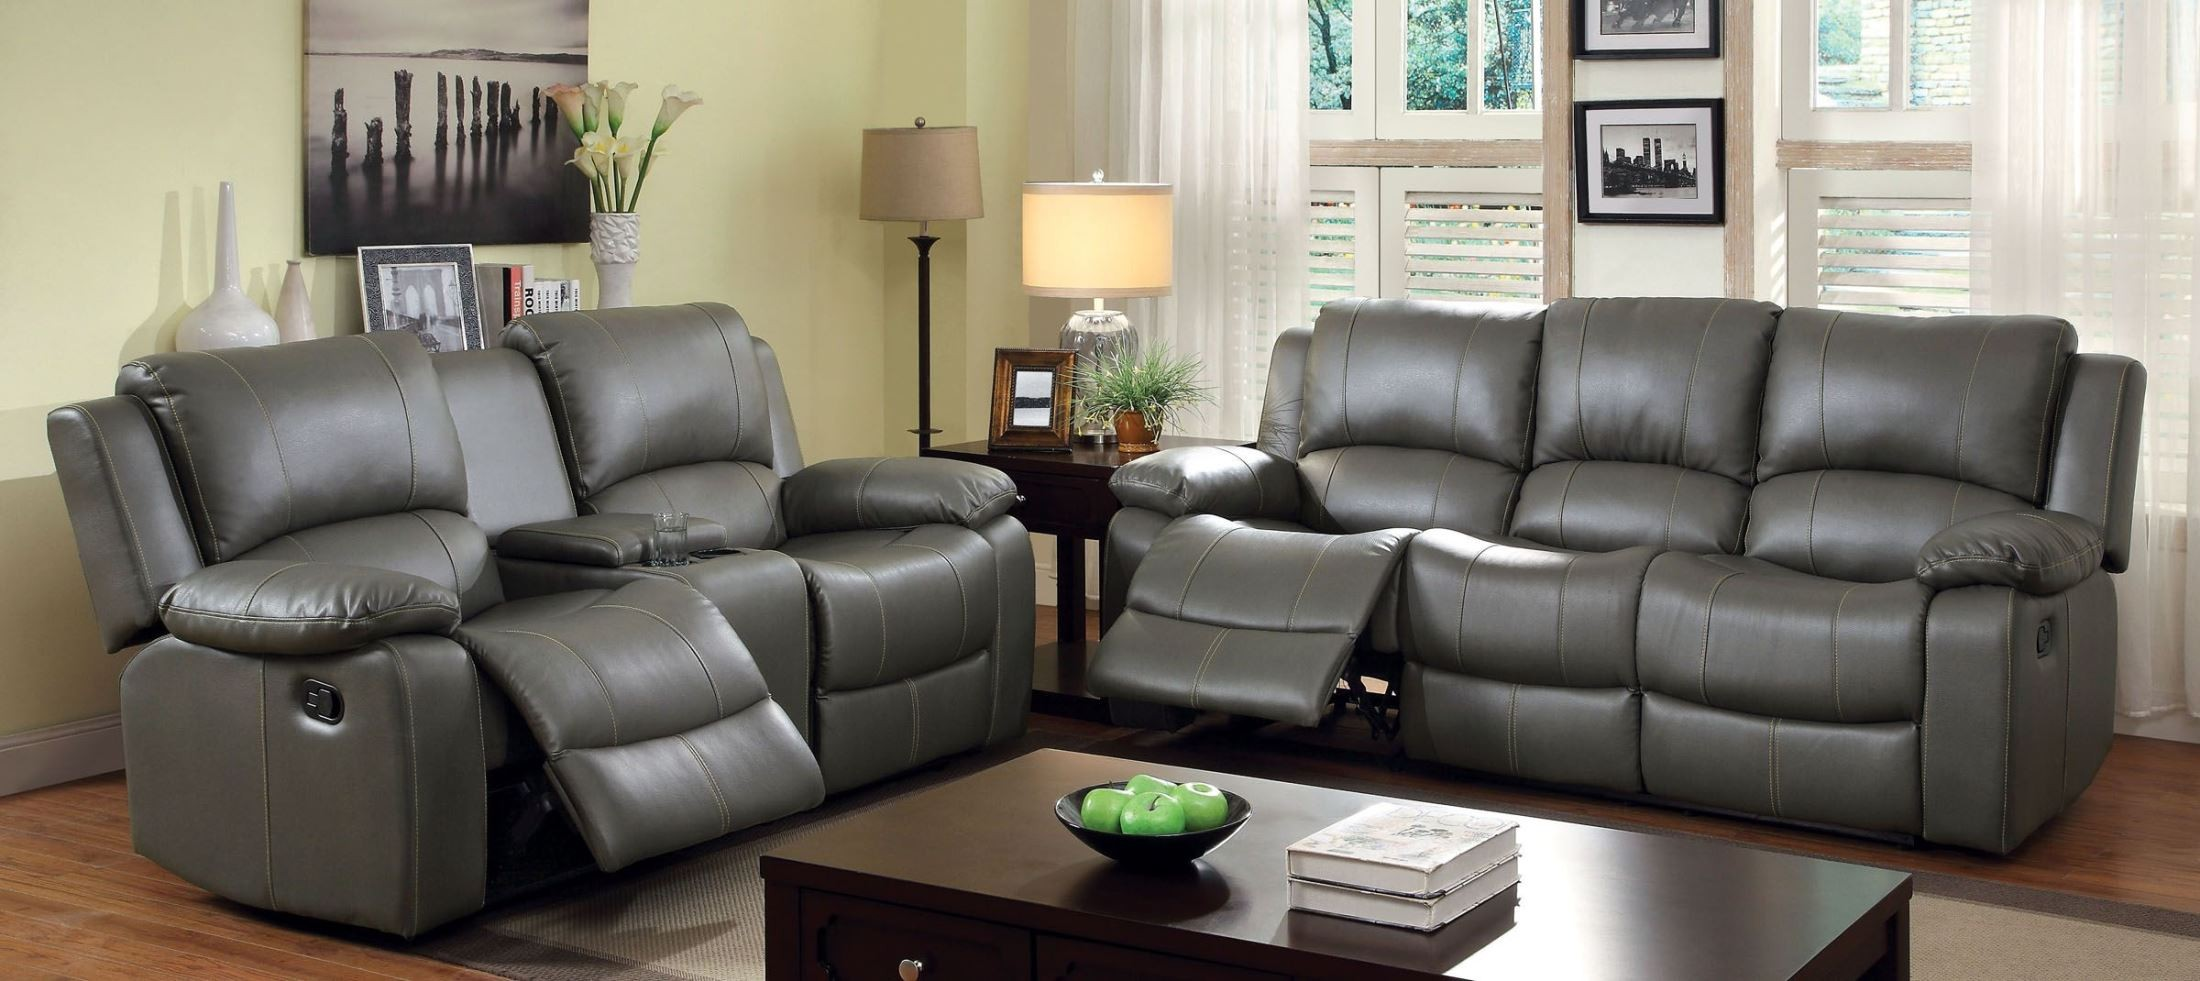 Sarles gray drop down table reclining living room set from Reclining living room furniture